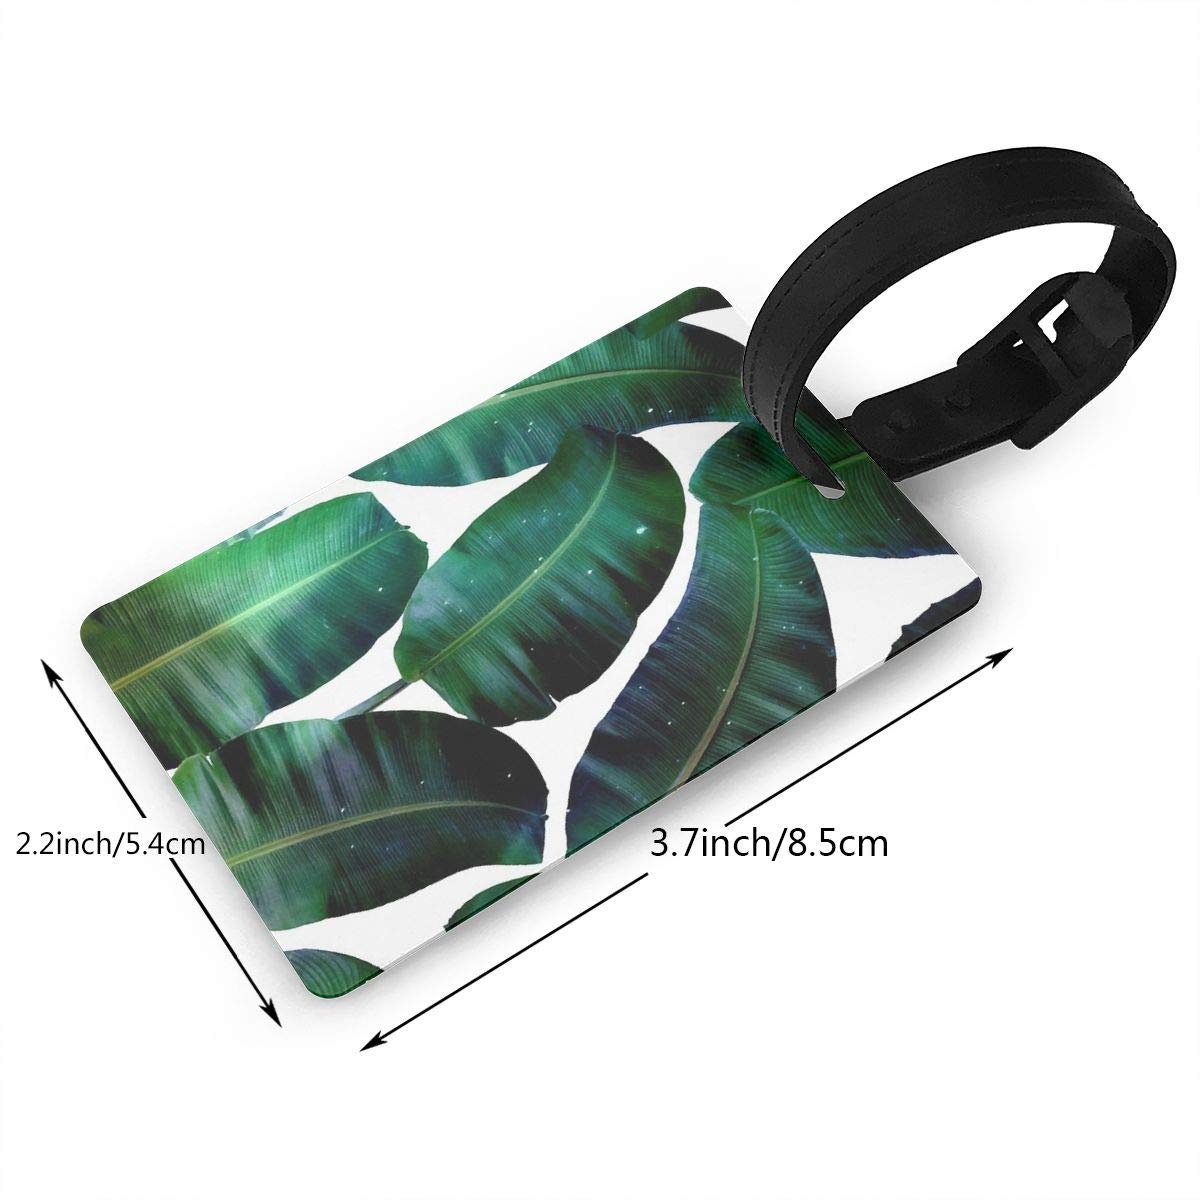 Cosmic Banana Leaves Luggage Tags Suitcase Labels Bag Travel Accessories Set of 2